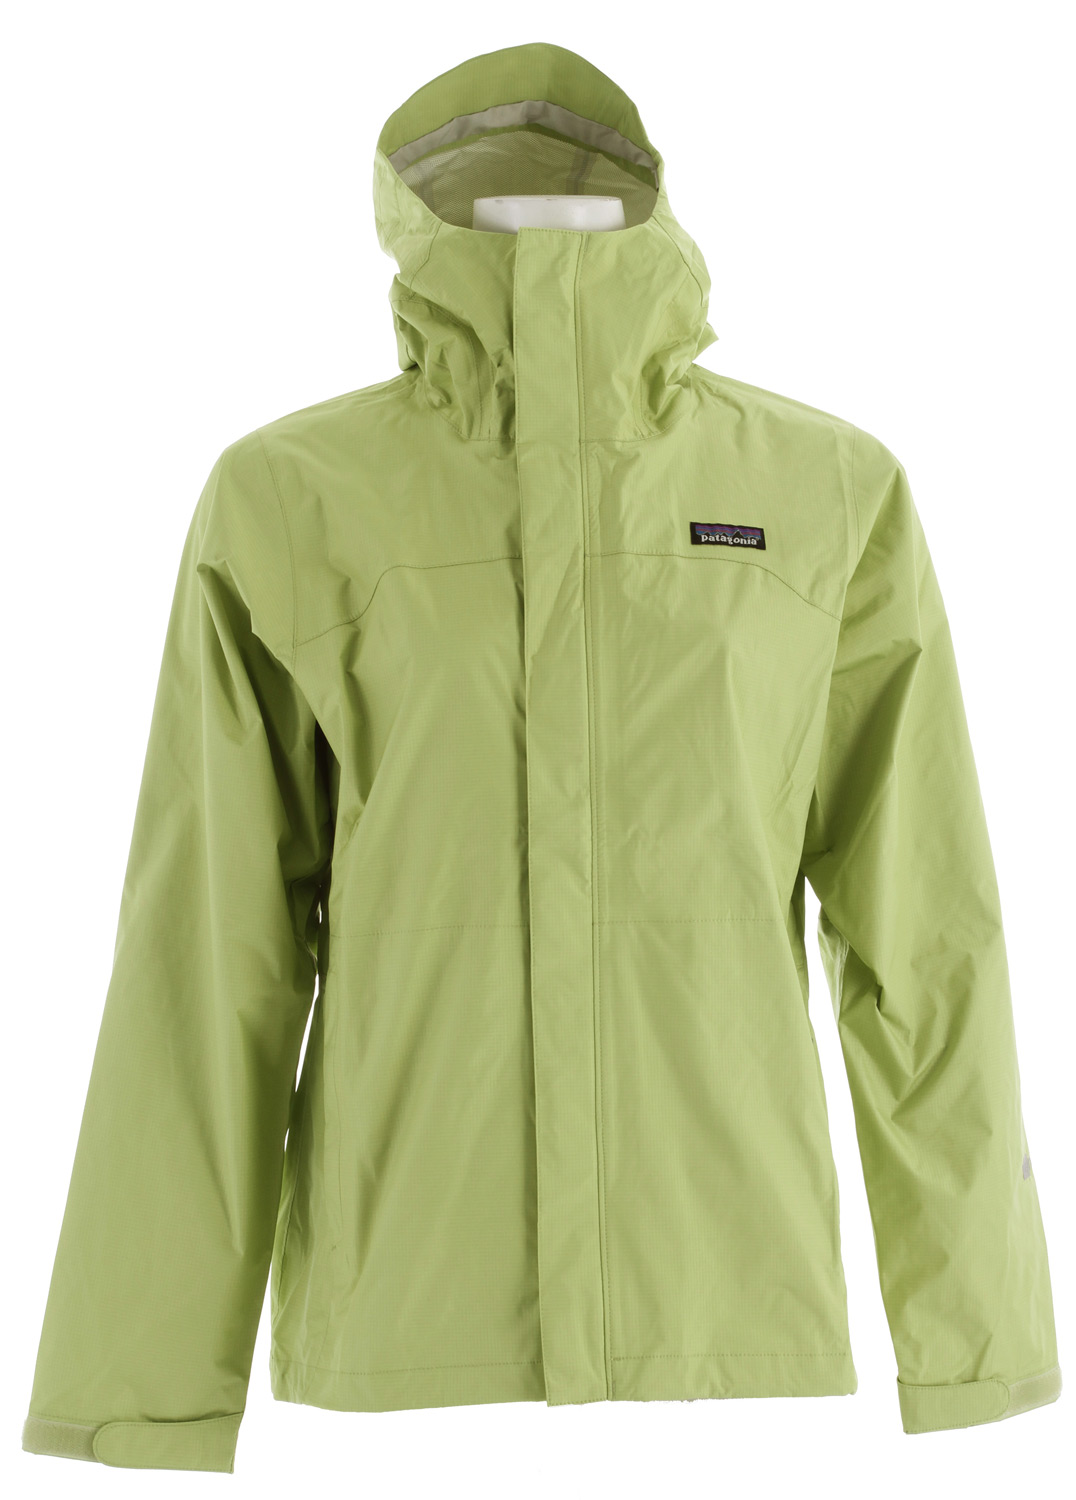 Pared-down and packable, the Torrentshell is a no-frills, 2.5-layer hard shell with a waterproof/breathable H2No barrier for seriously wet weather. fabric: 2.5-layer, 2.6-oz 50-denier 100% nylon ripstop with a waterproof/breathable H2No barrier and a Deluge DWR (durable water repellent) finishKey Features of the Patagonia Torrentshell Jacket: 2.5-layer nylon ripstop shell with a waterproof/breathable H2No barrier and Deluge DWR finish 2-way-adjustable hood with a laminated visor rolls down and stows Microfleece-lined neck provides comfort and protects waterproof/breathable barrier Center-front zipper has exterior and interior storm flaps to keep water out; pit zips have storm flaps and Deluge DWR-treated zippers Self-fabric hook-and-loop cuff closures Pockets: Two handwarmers, one internal mesh drop-in Drawcord hem; packs into zippered self-storage pocket - $89.95